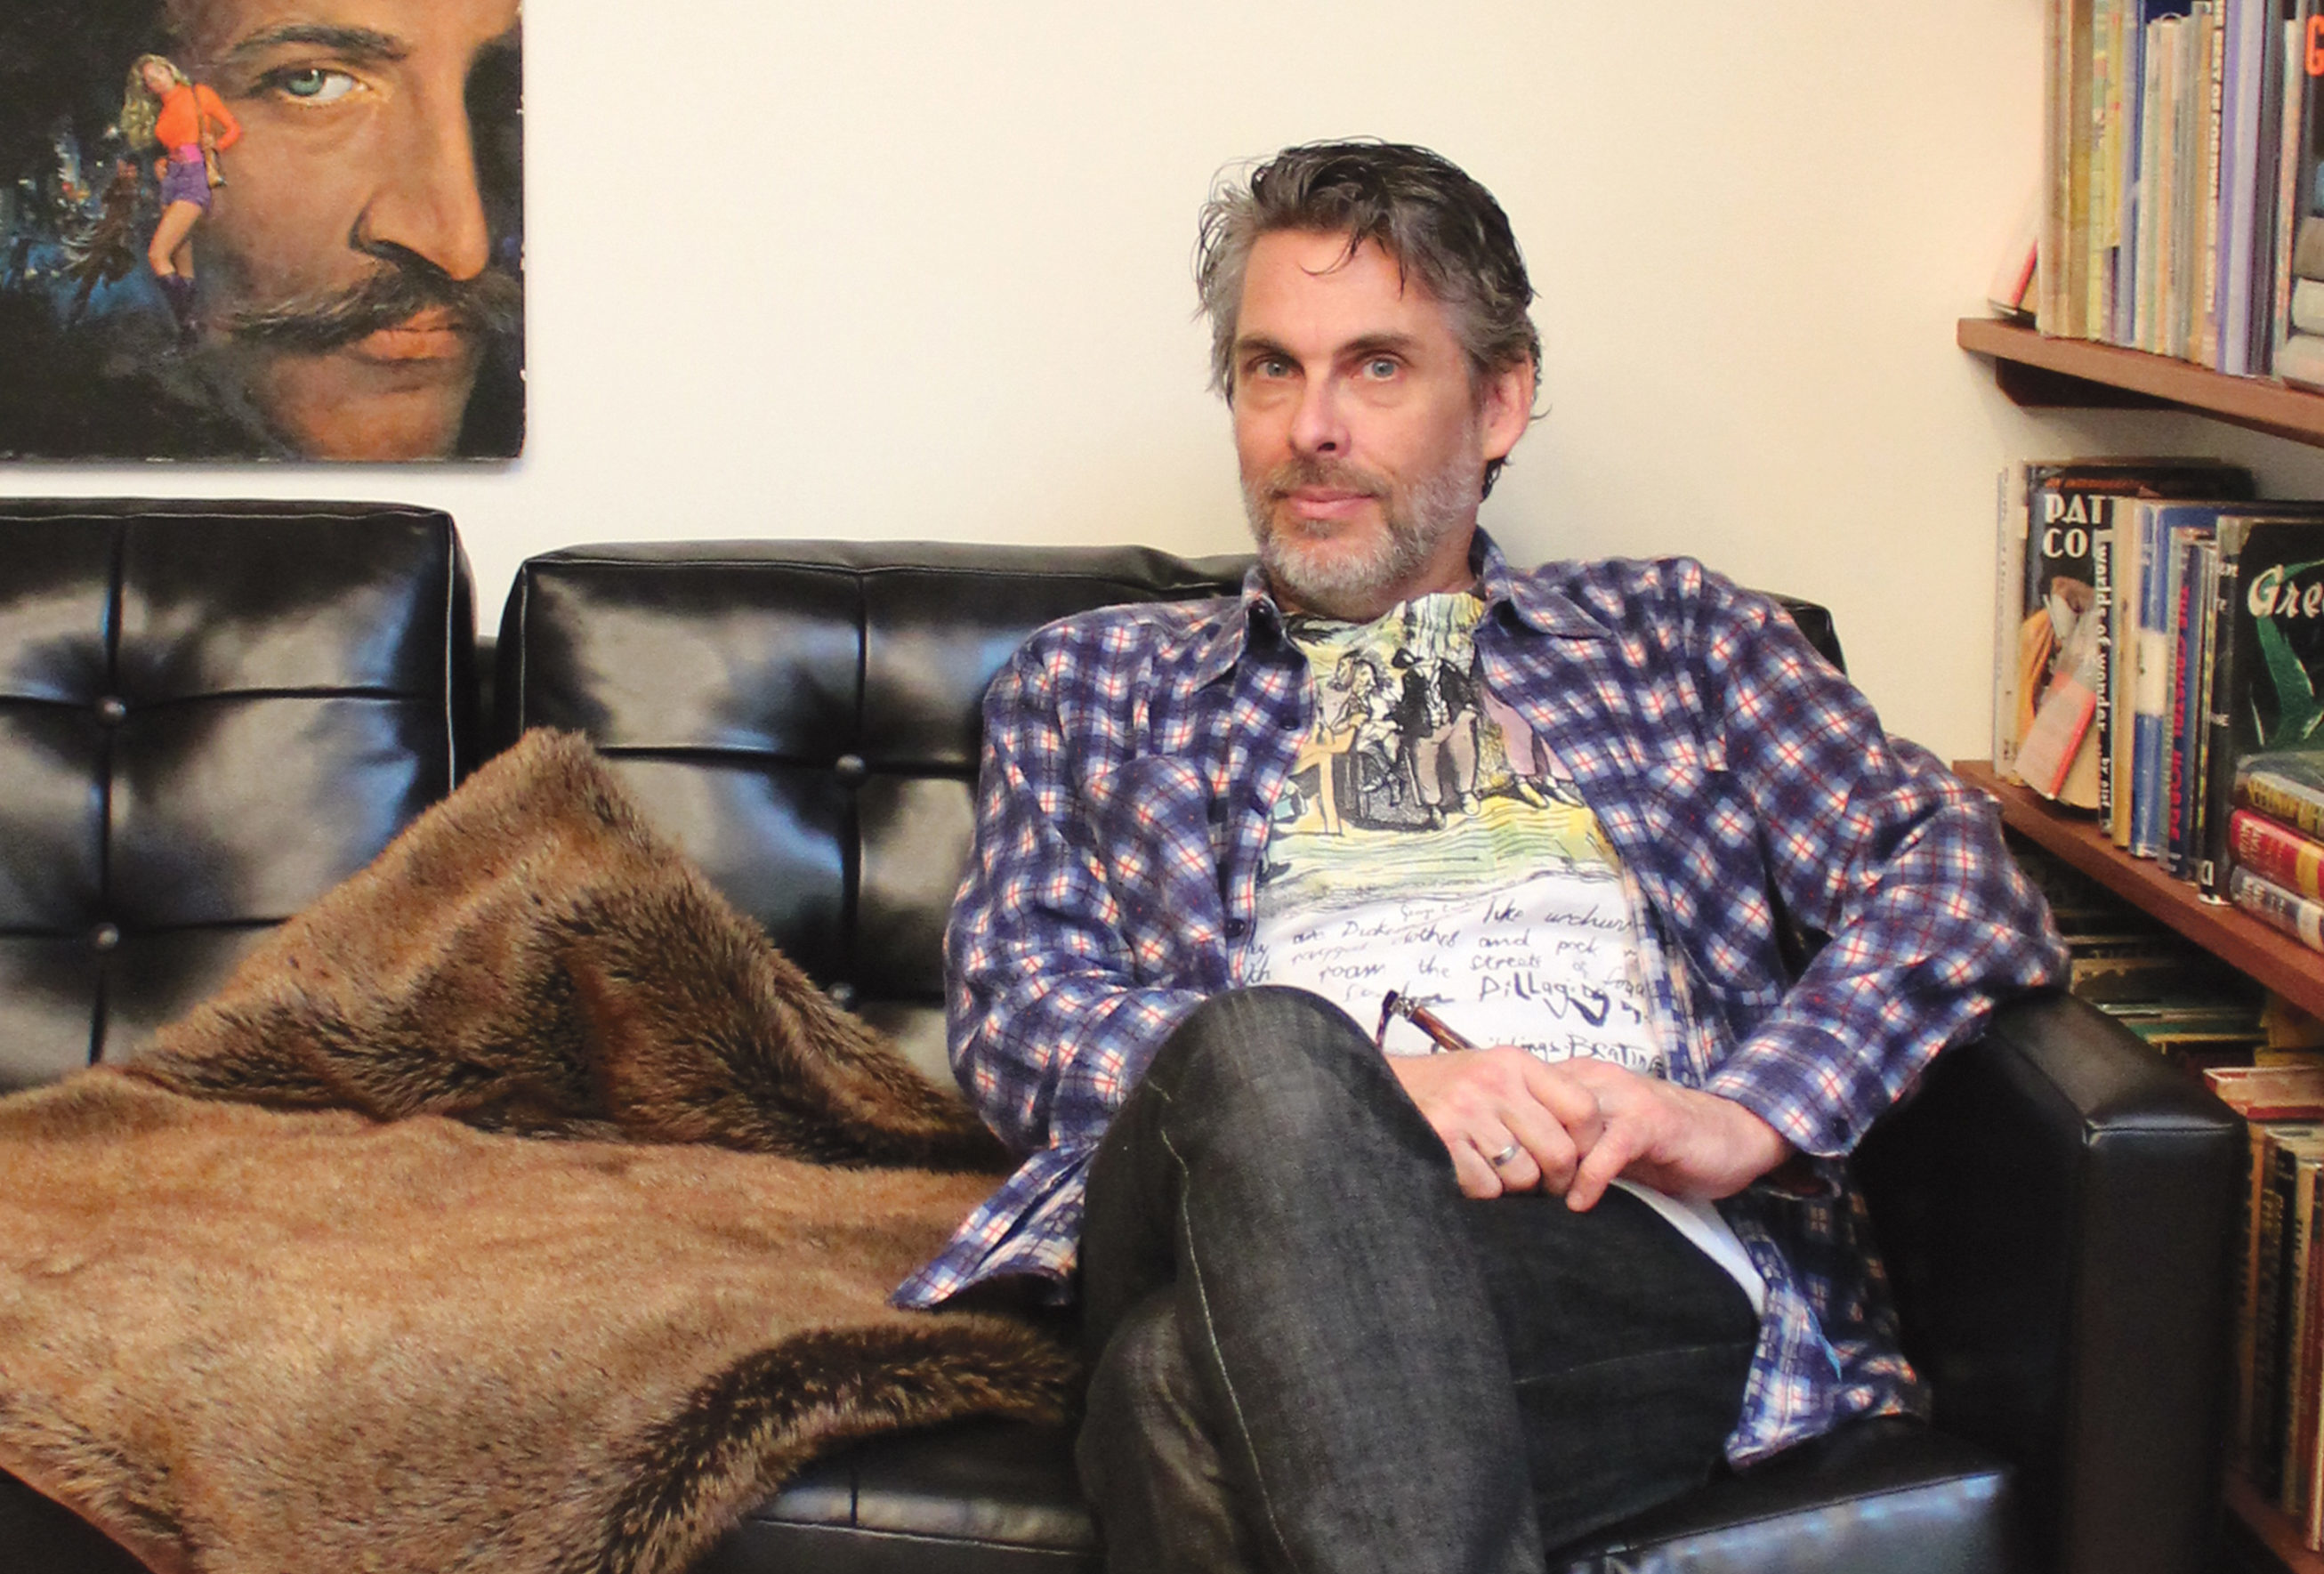 Michael Chabon at home in 2016 (Photo/Cathleen Maclearie)